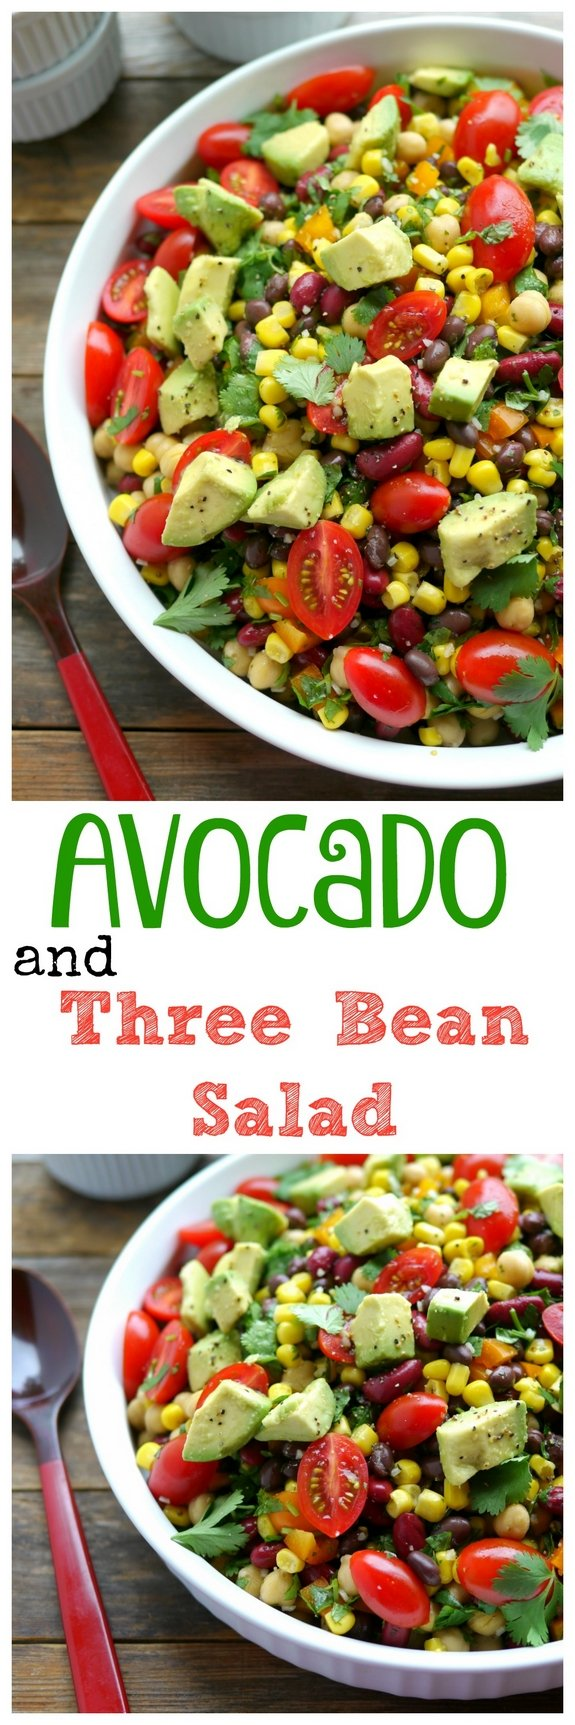 VIDEO + Recipe: A filling and satisfying dish, this Avocado and Three Bean Salad is the perfect side to any meal.  You need to try it as soon as possible from NoblePig.com. #noblepig #avocado #avocadosalad #threebeansalad via @cmpollak1